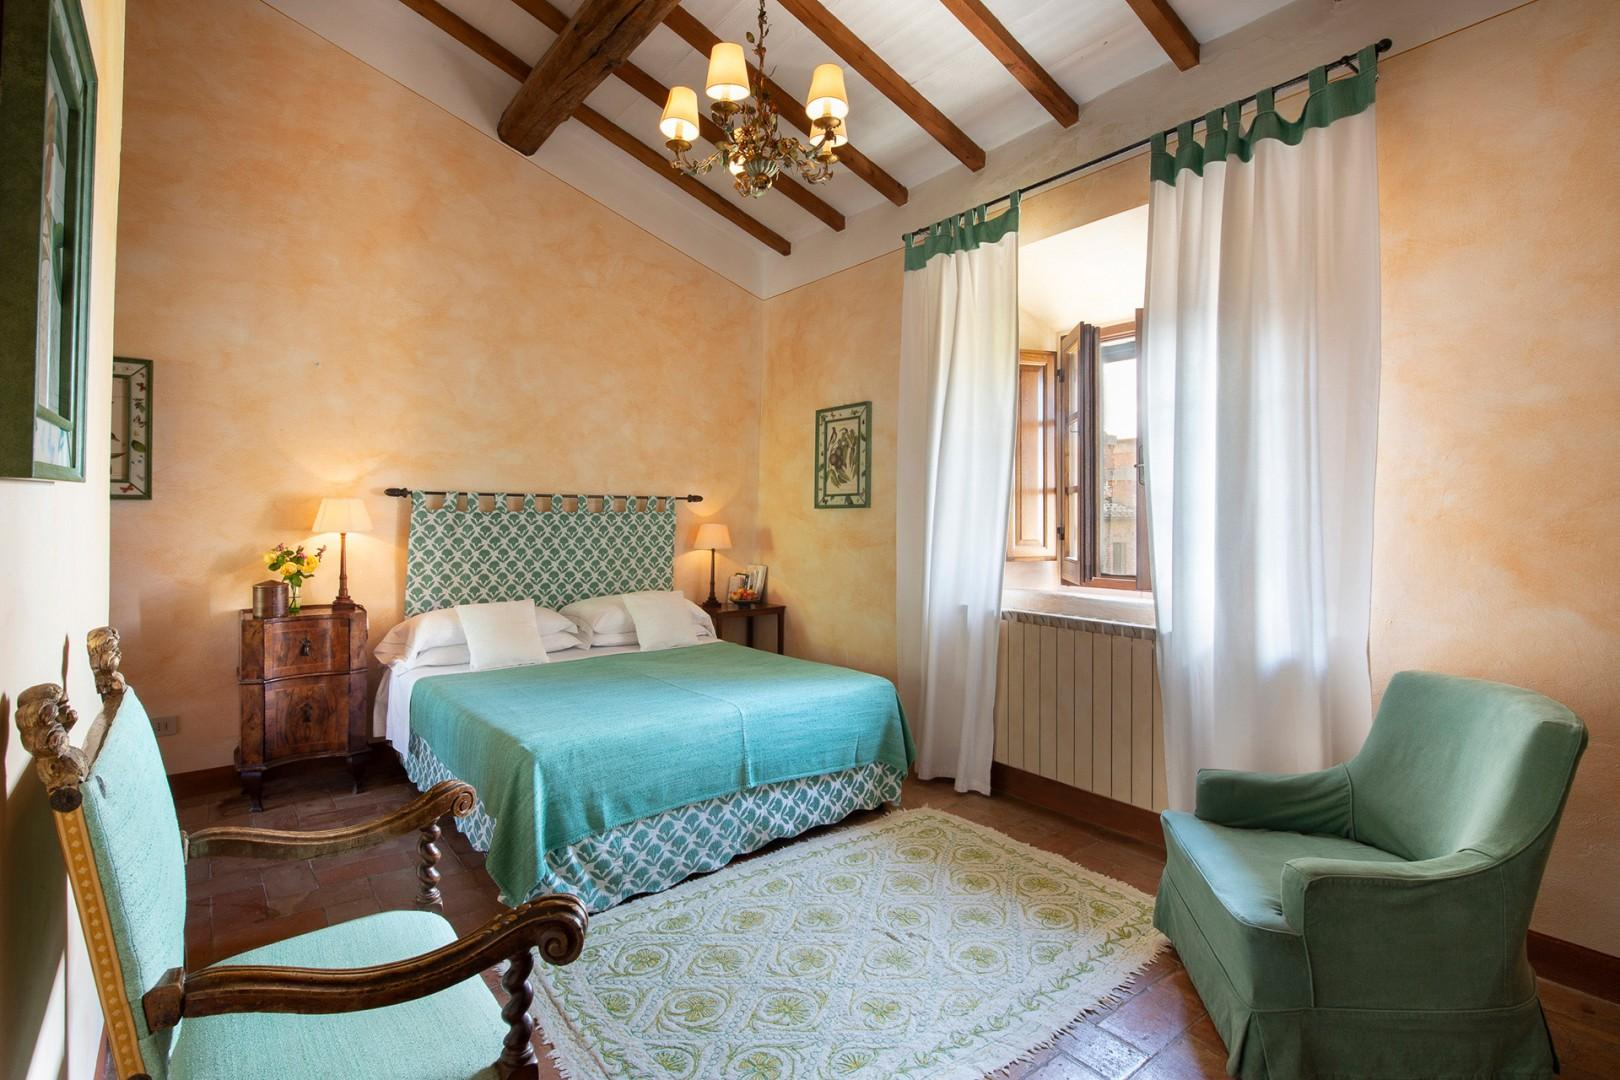 High beamed ceiling in bedroom 1 with windows overlooking the garden and orchards.